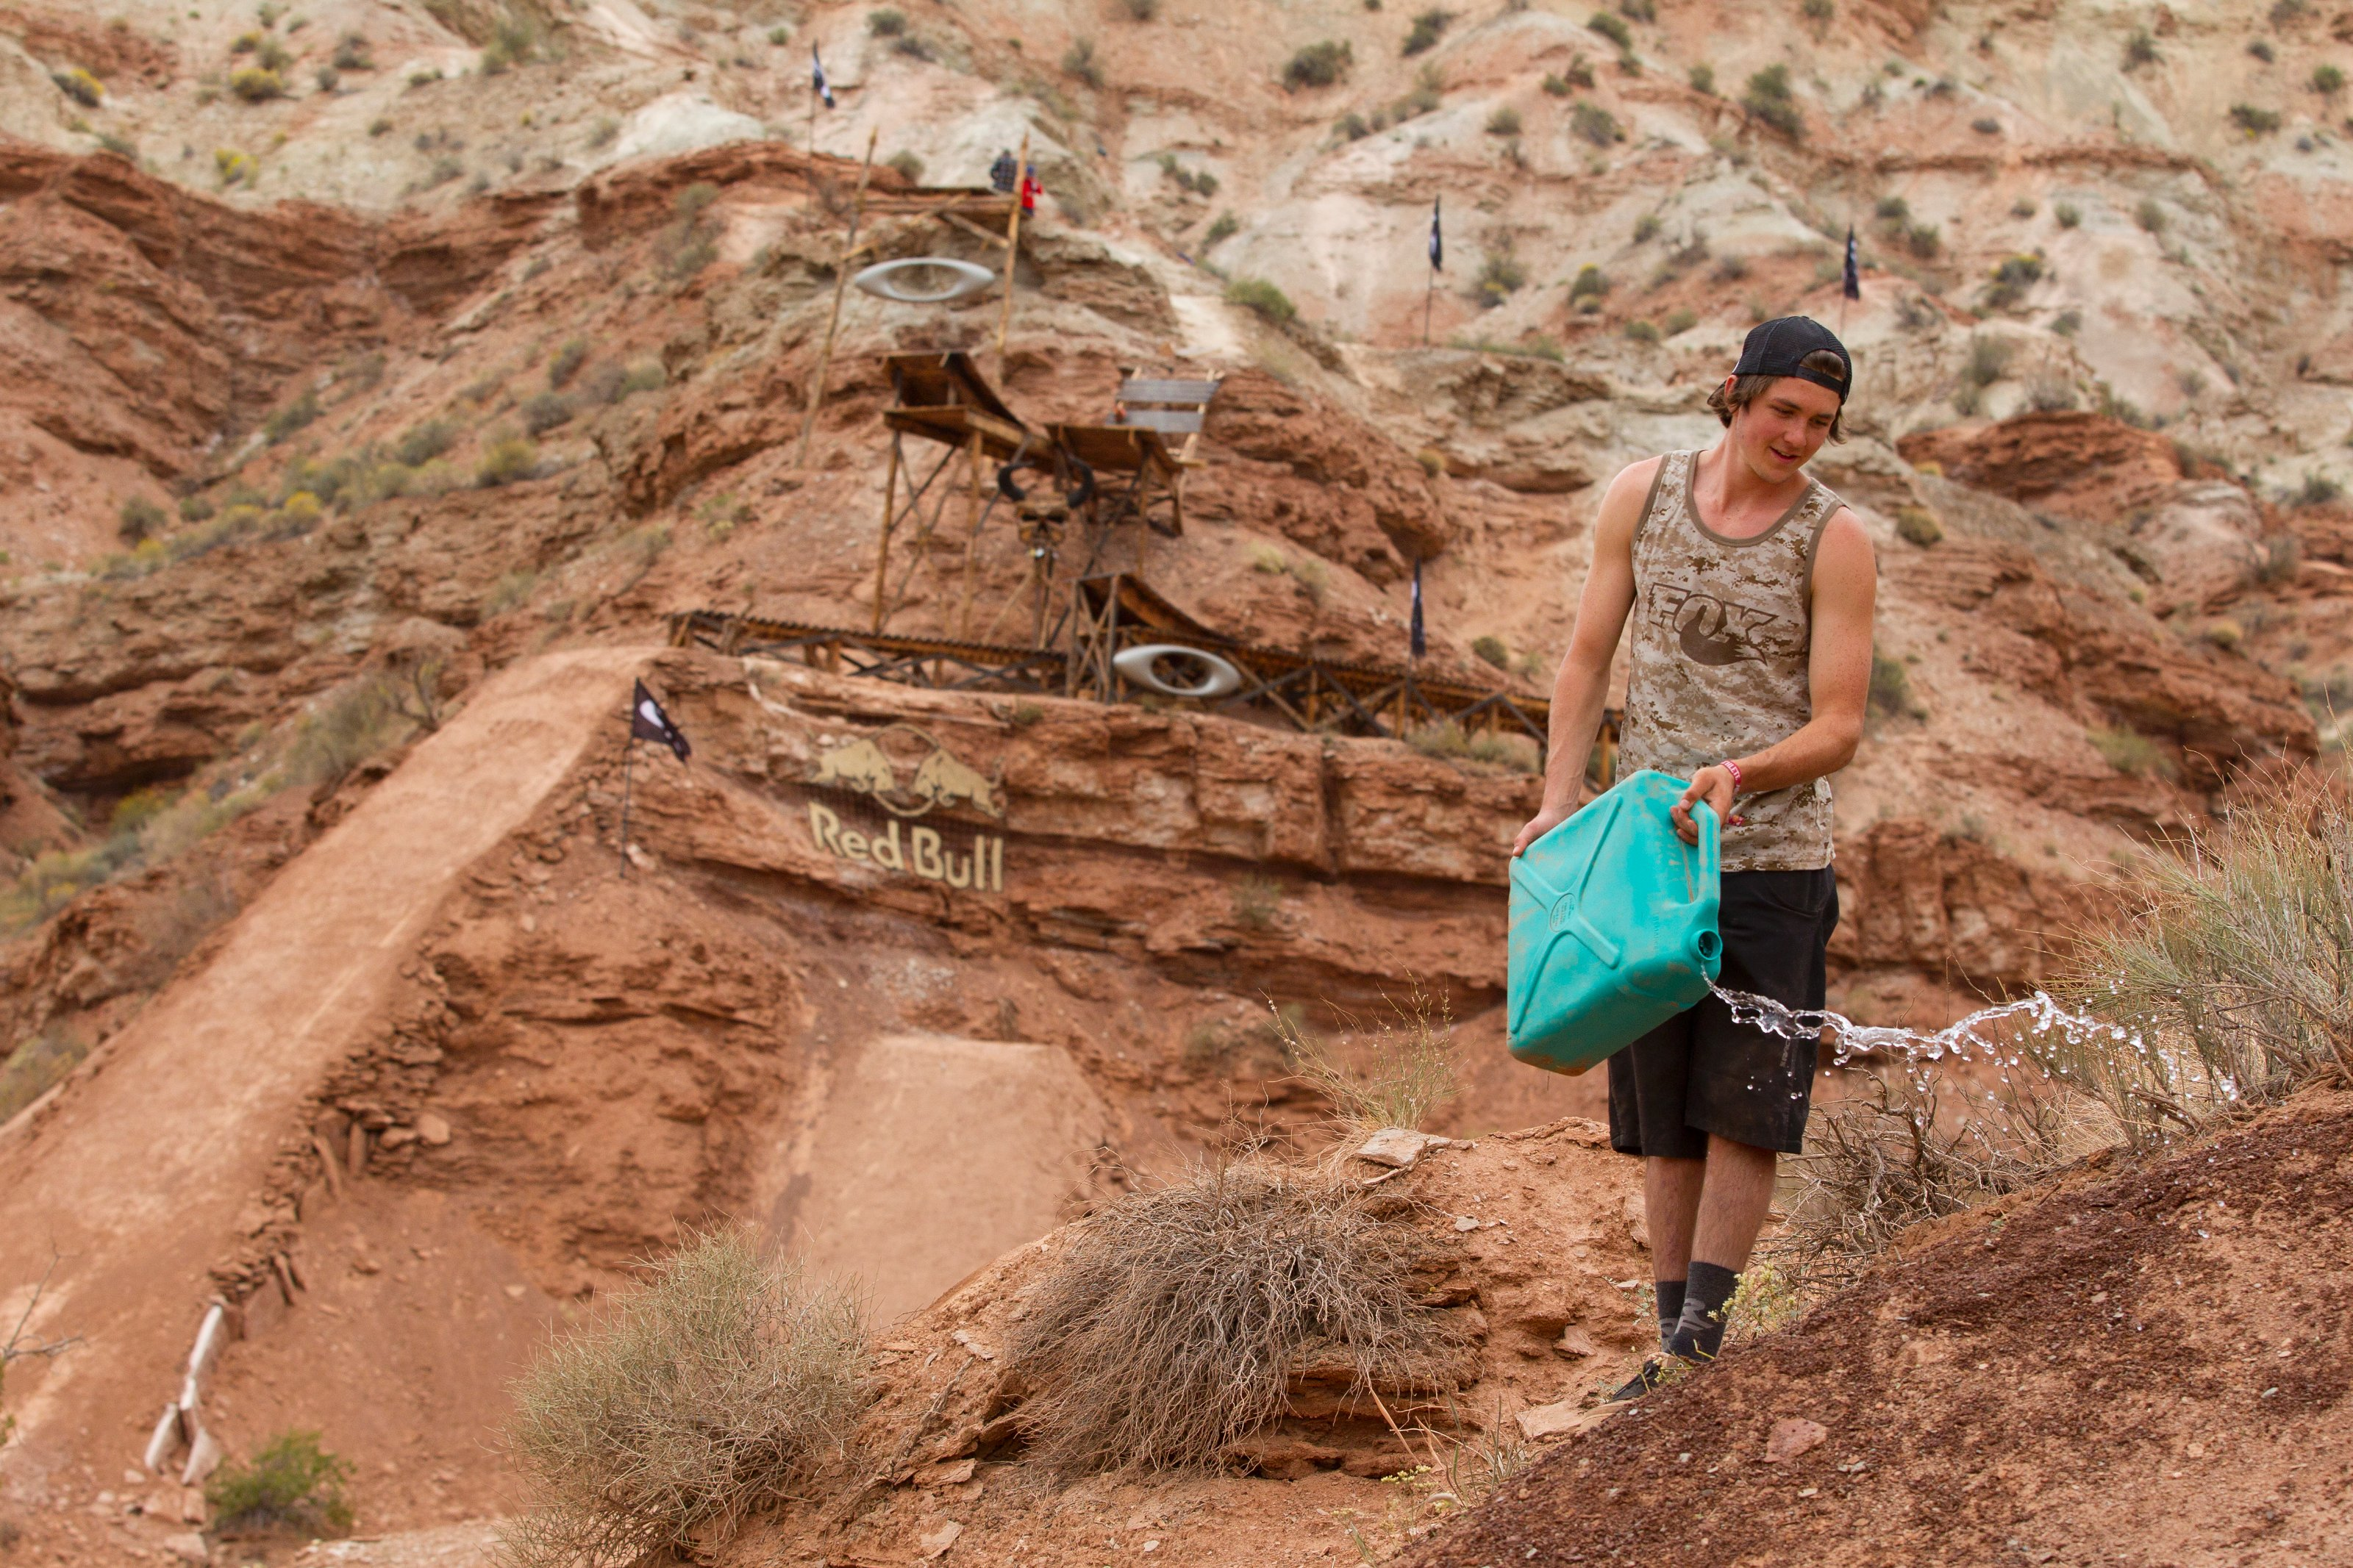 Brendan Howey works on his line at Red Bull Rampage, in Virgin, UT, USA, on 9 October, 2013. // John Gibson/Red Bull Content Pool // P-20131010-00021 // Usage for editorial use only // Please go to www.redbullcontentpool.com for further information. //